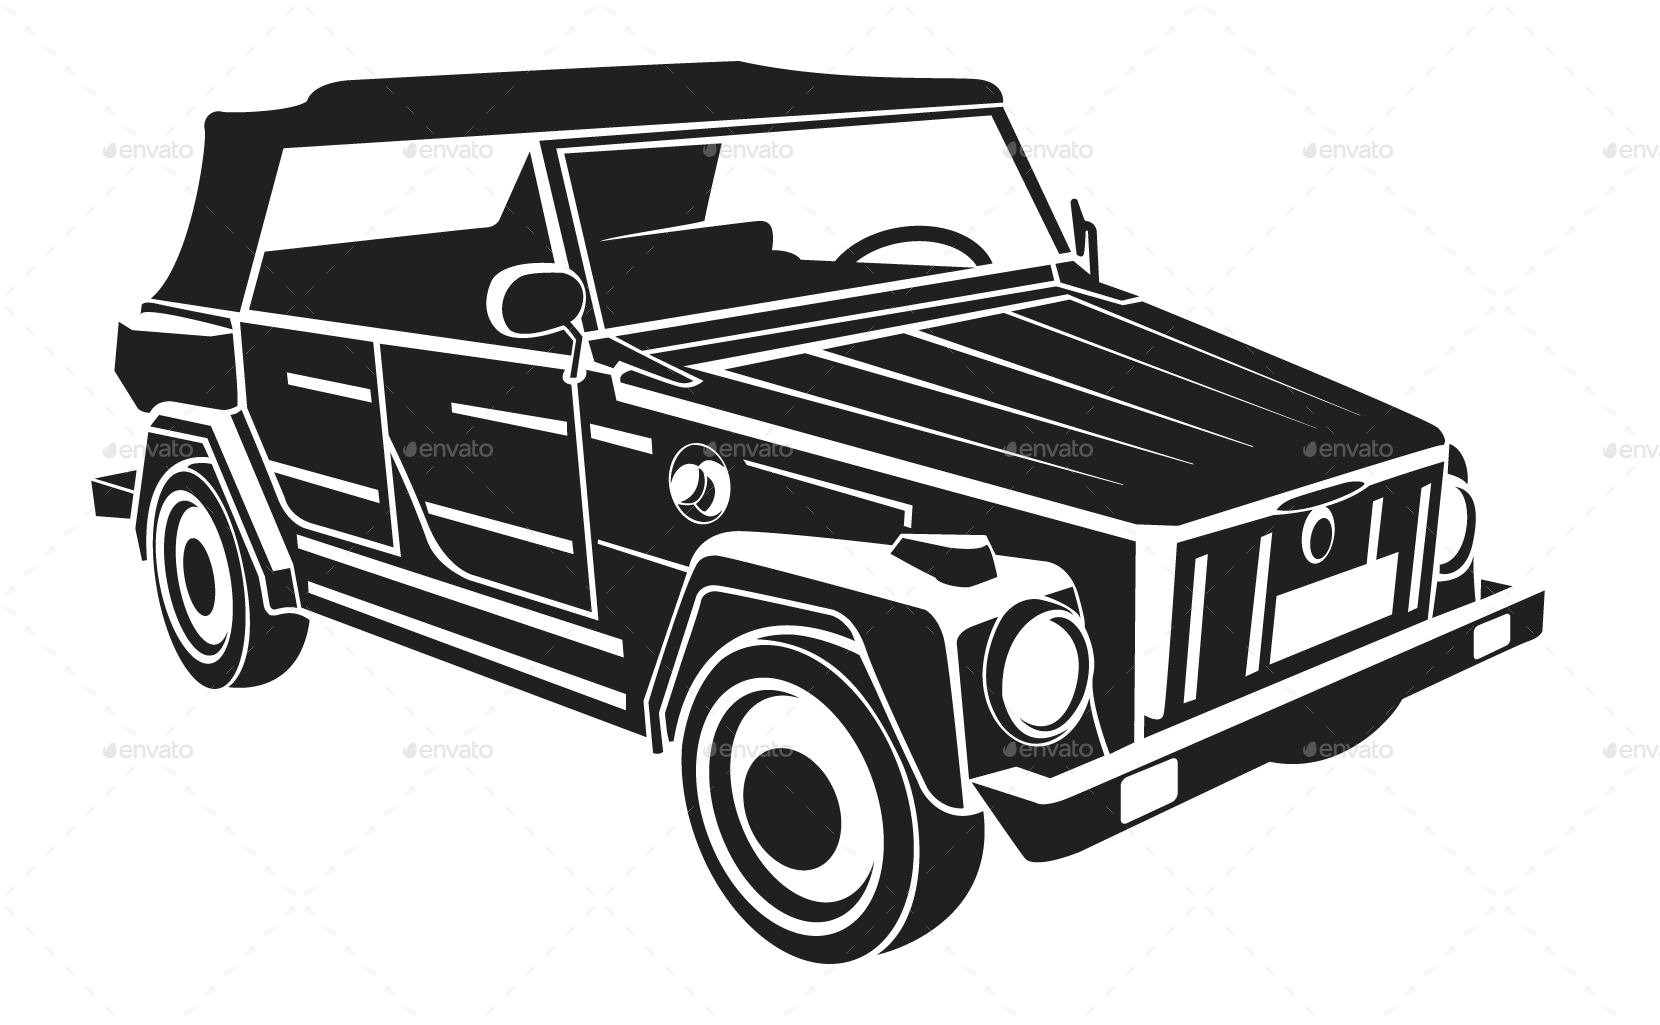 Volkswagen drawing silhouette. Vw car set by